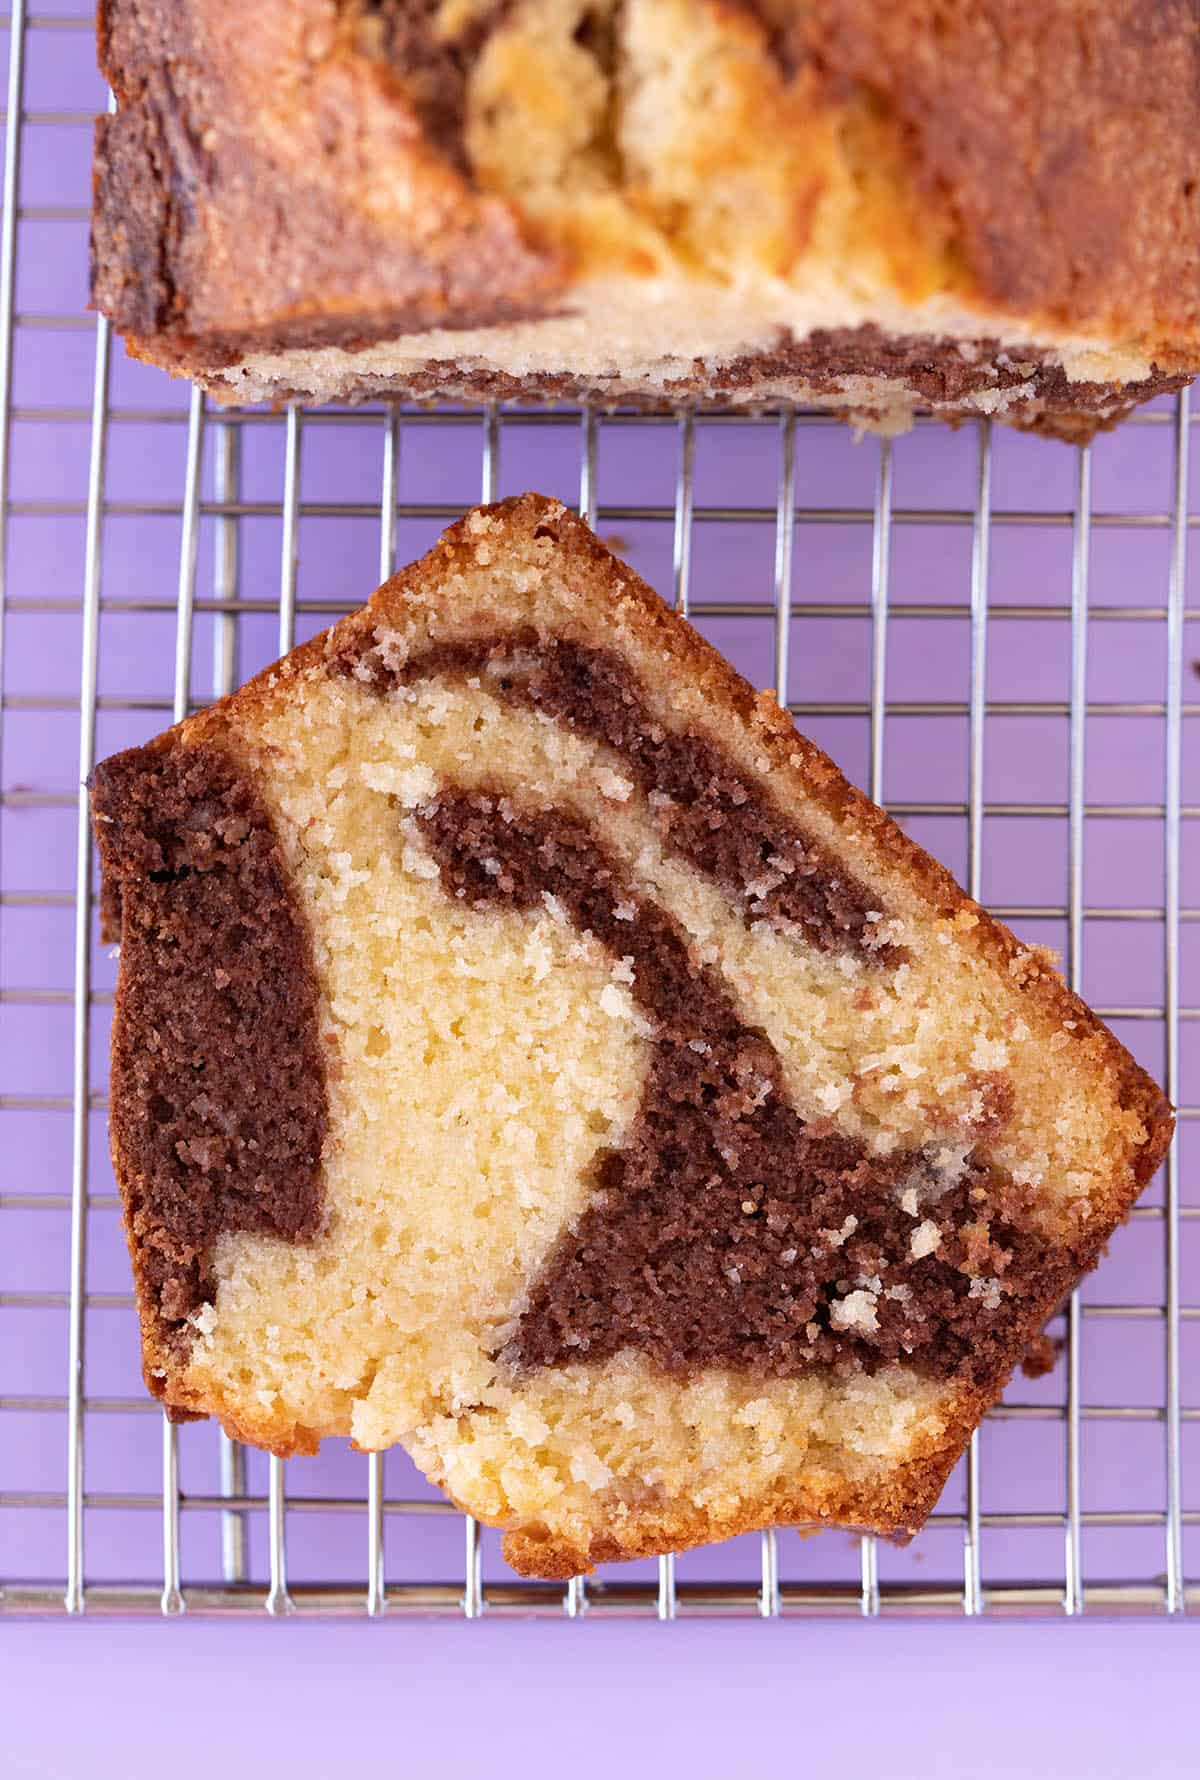 Top view of a piece of homemade Marble Cake on a purple background.